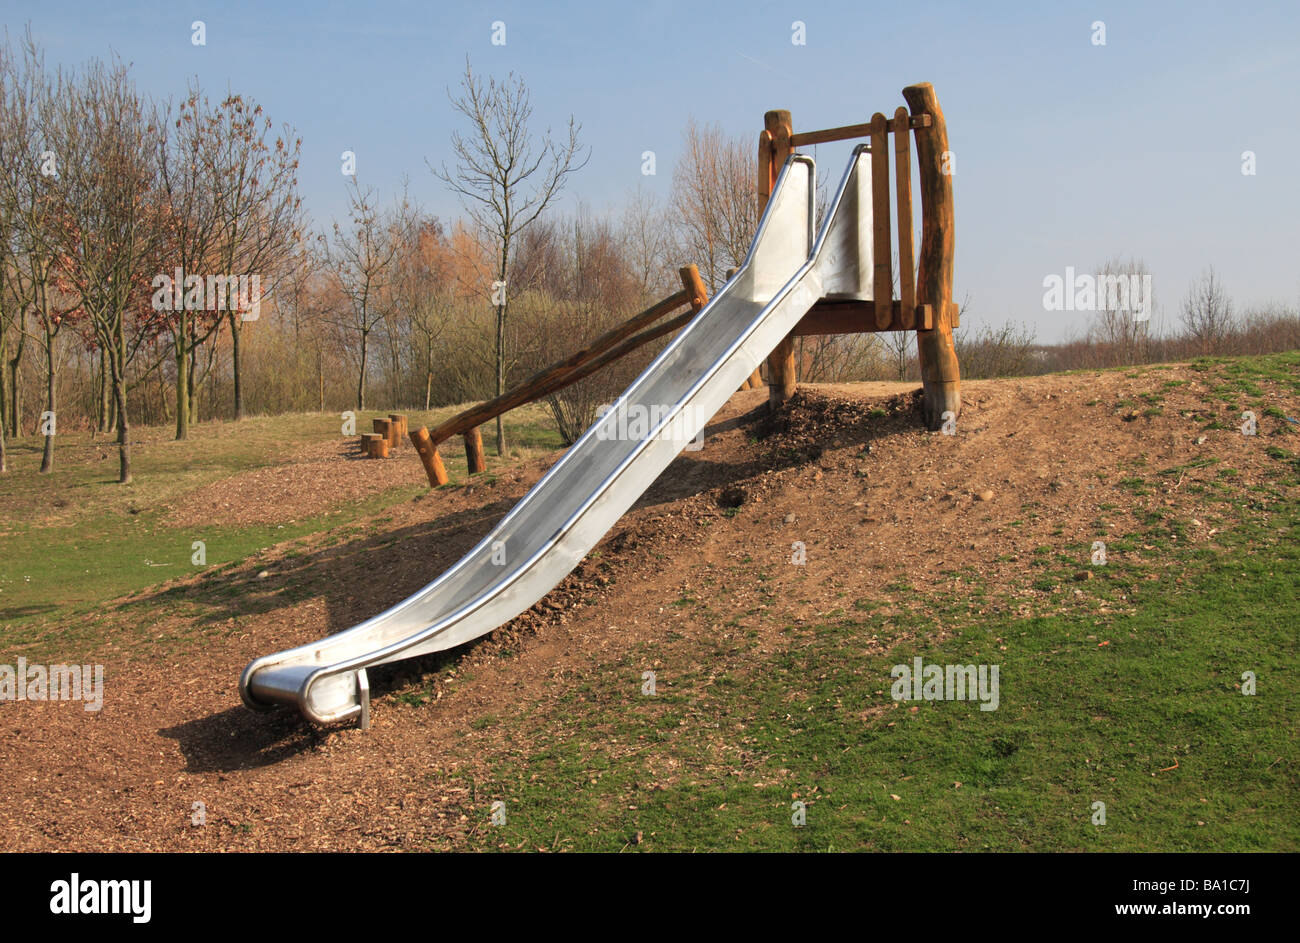 A children's slide in the children's play area in the Bedfont Lakes Country Park, Middx, UK. Stock Photo